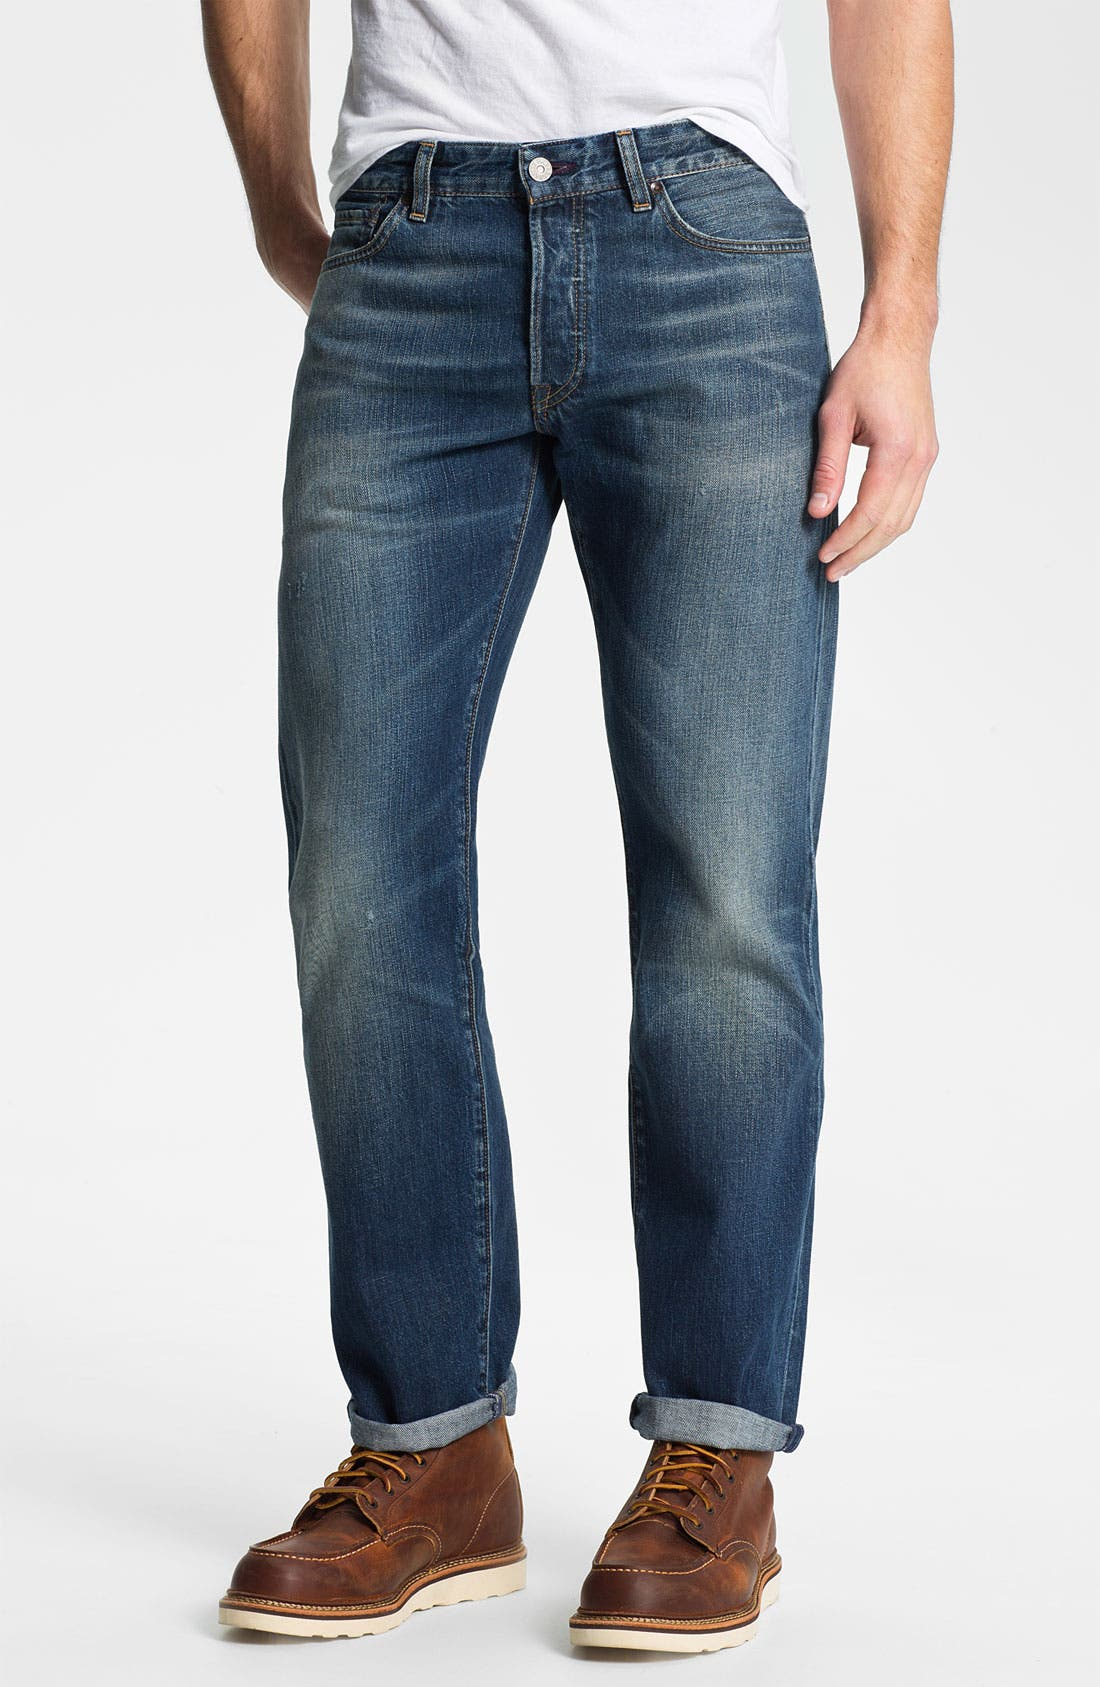 Alternate Image 1 Selected - Levi's® Made & Crafted™ 'Ruler' Straight Leg Jeans (Sparkling)